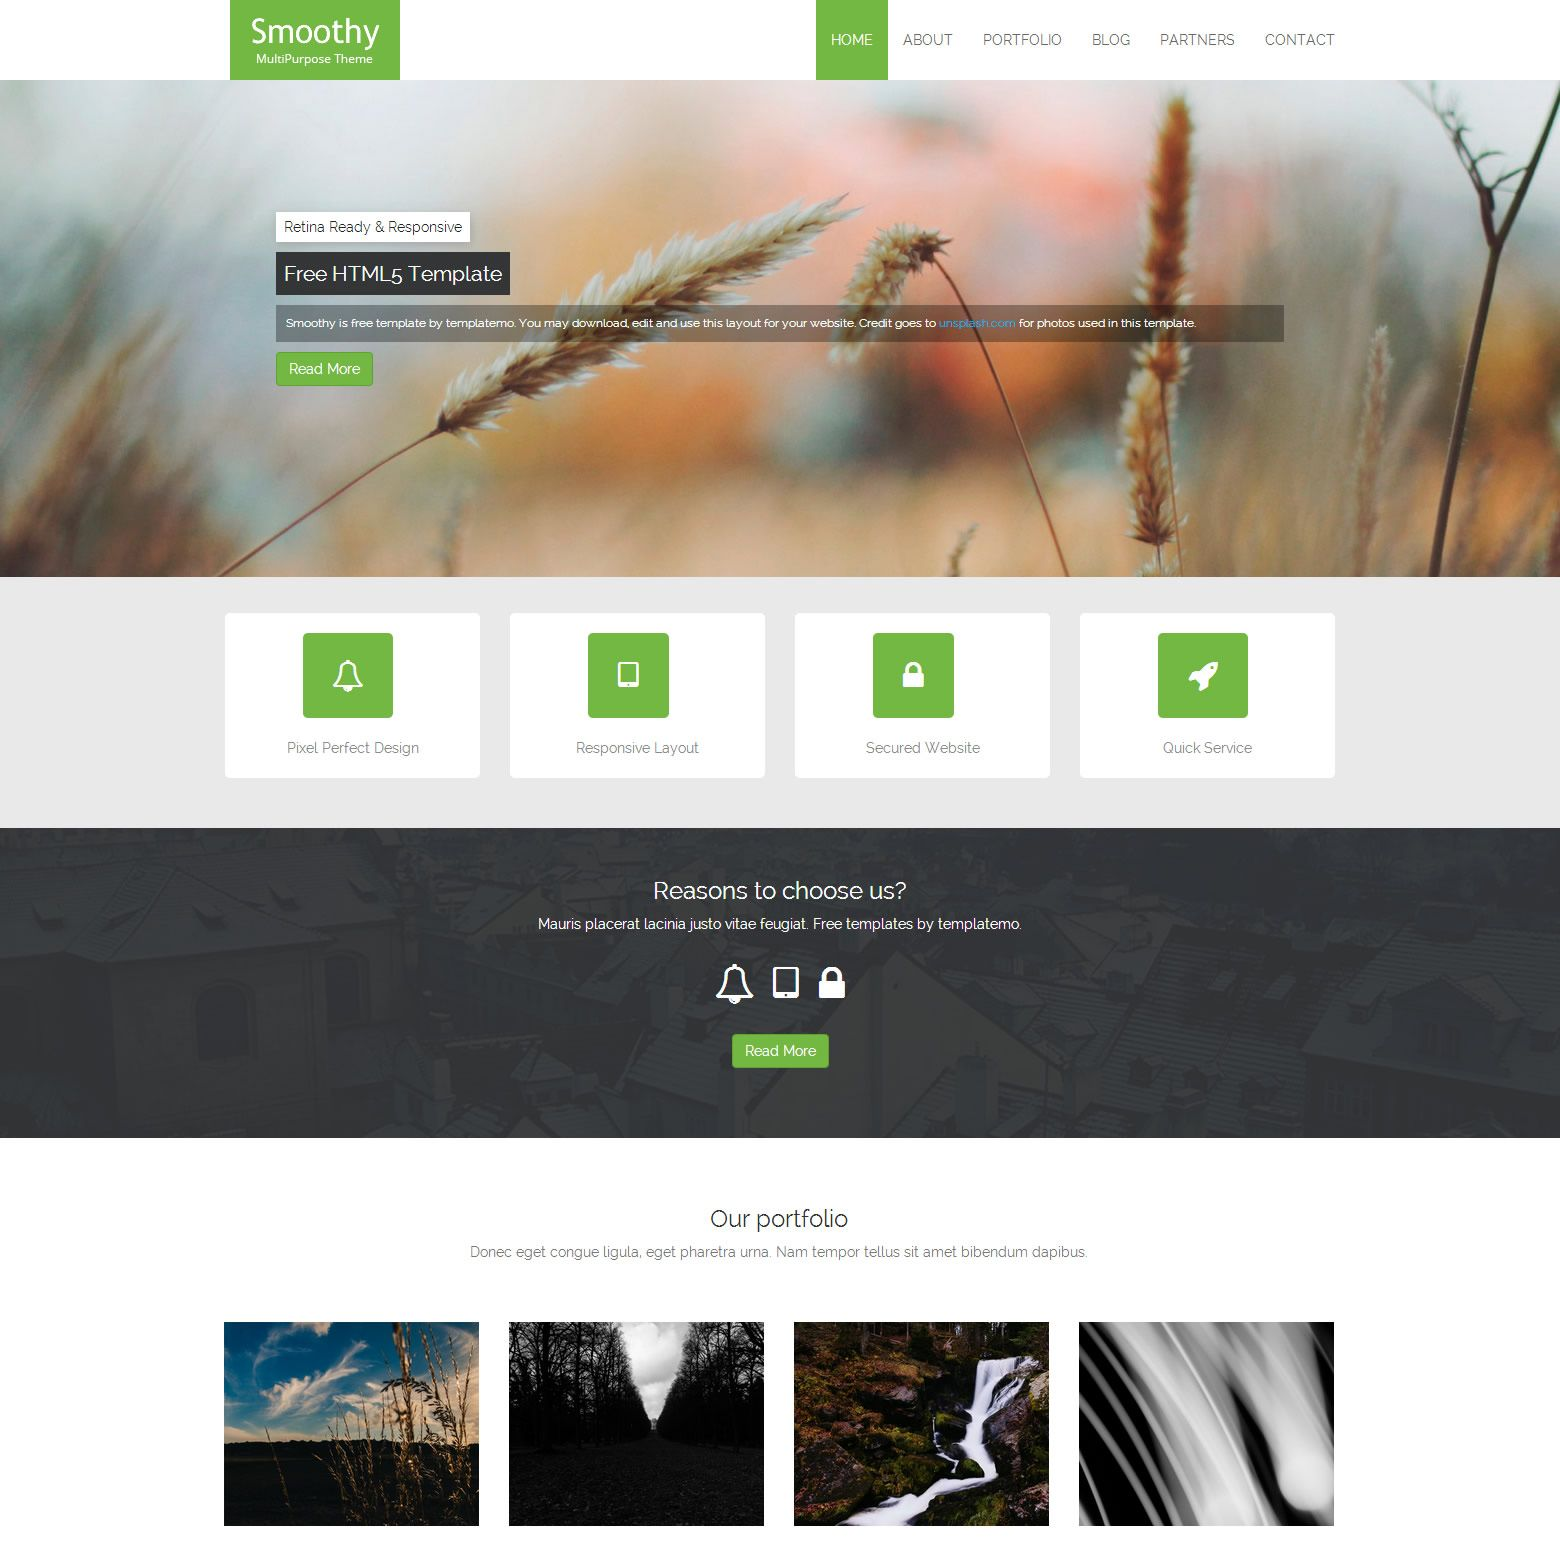 Templatemo 396 Smoothy Css Templates Templates Html And Css Templates